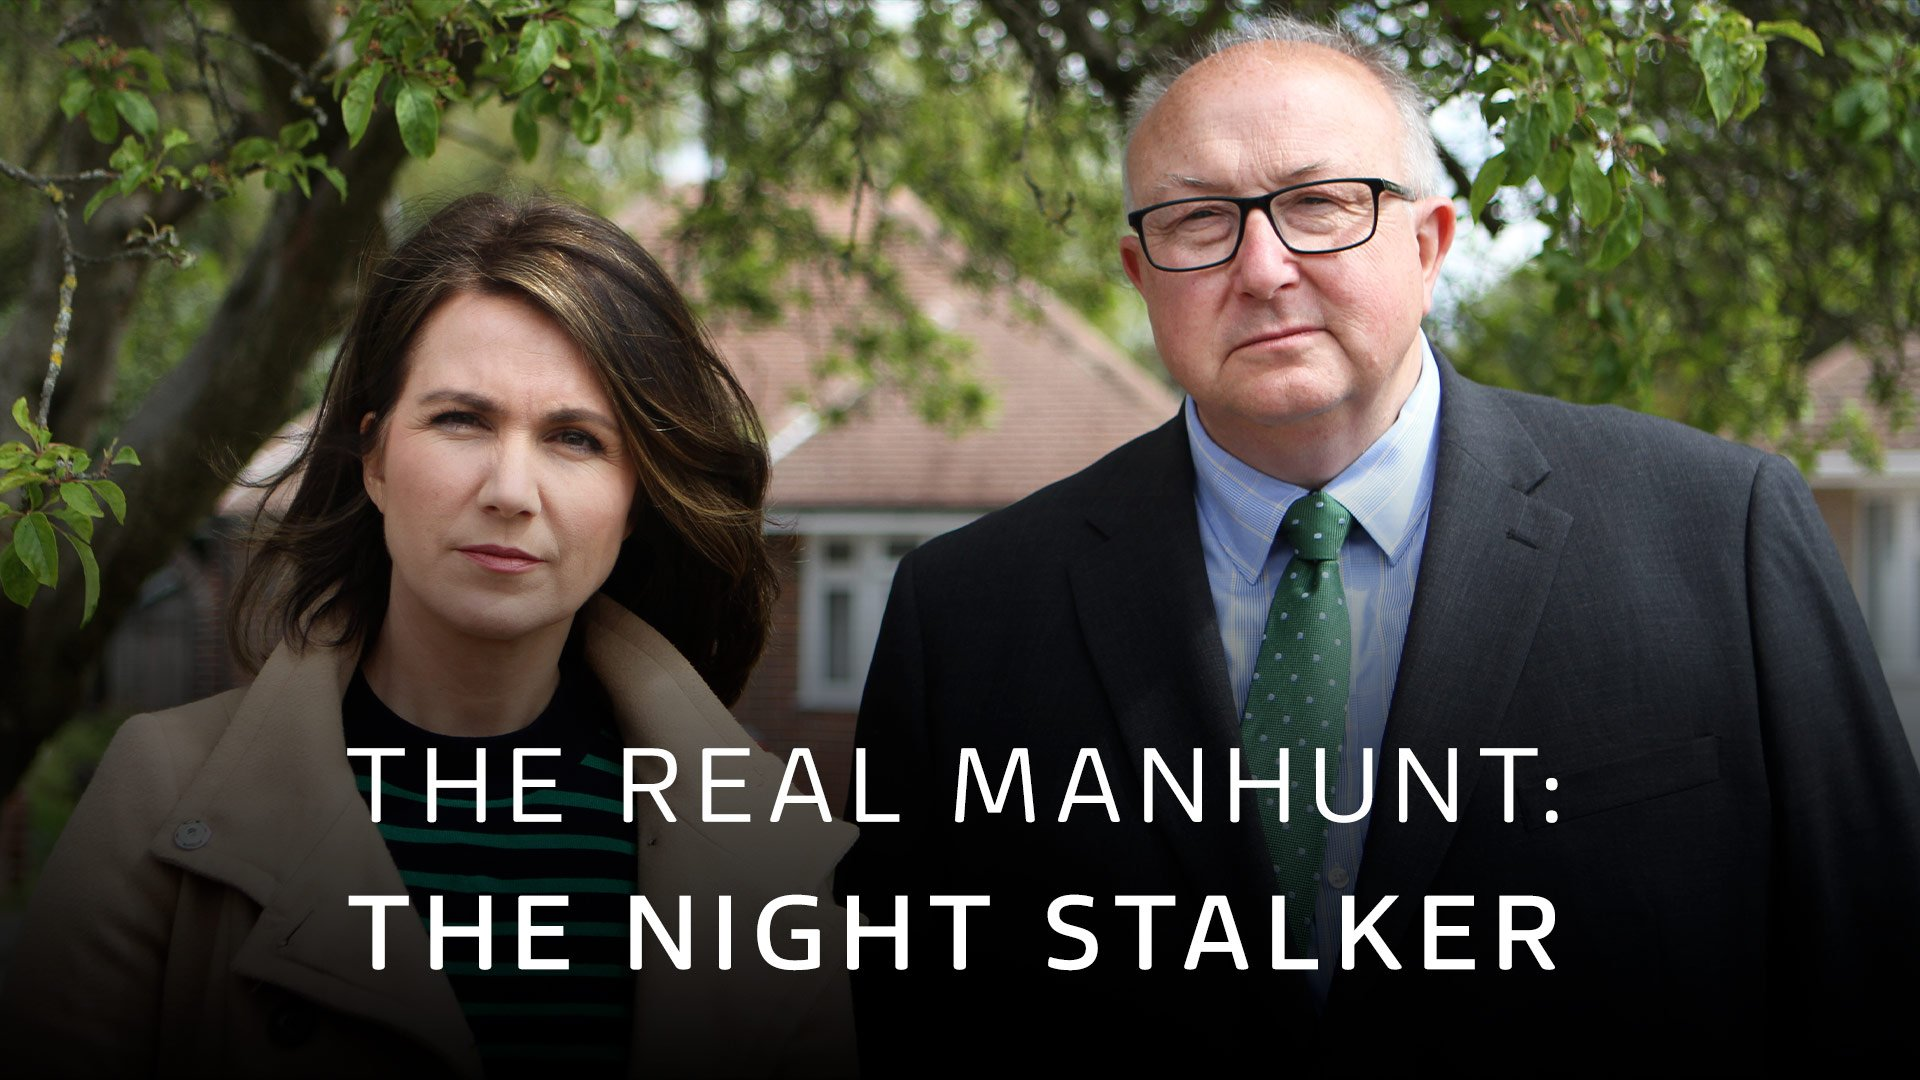 The Real Manhunt: The Night Stalker on BritBox UK